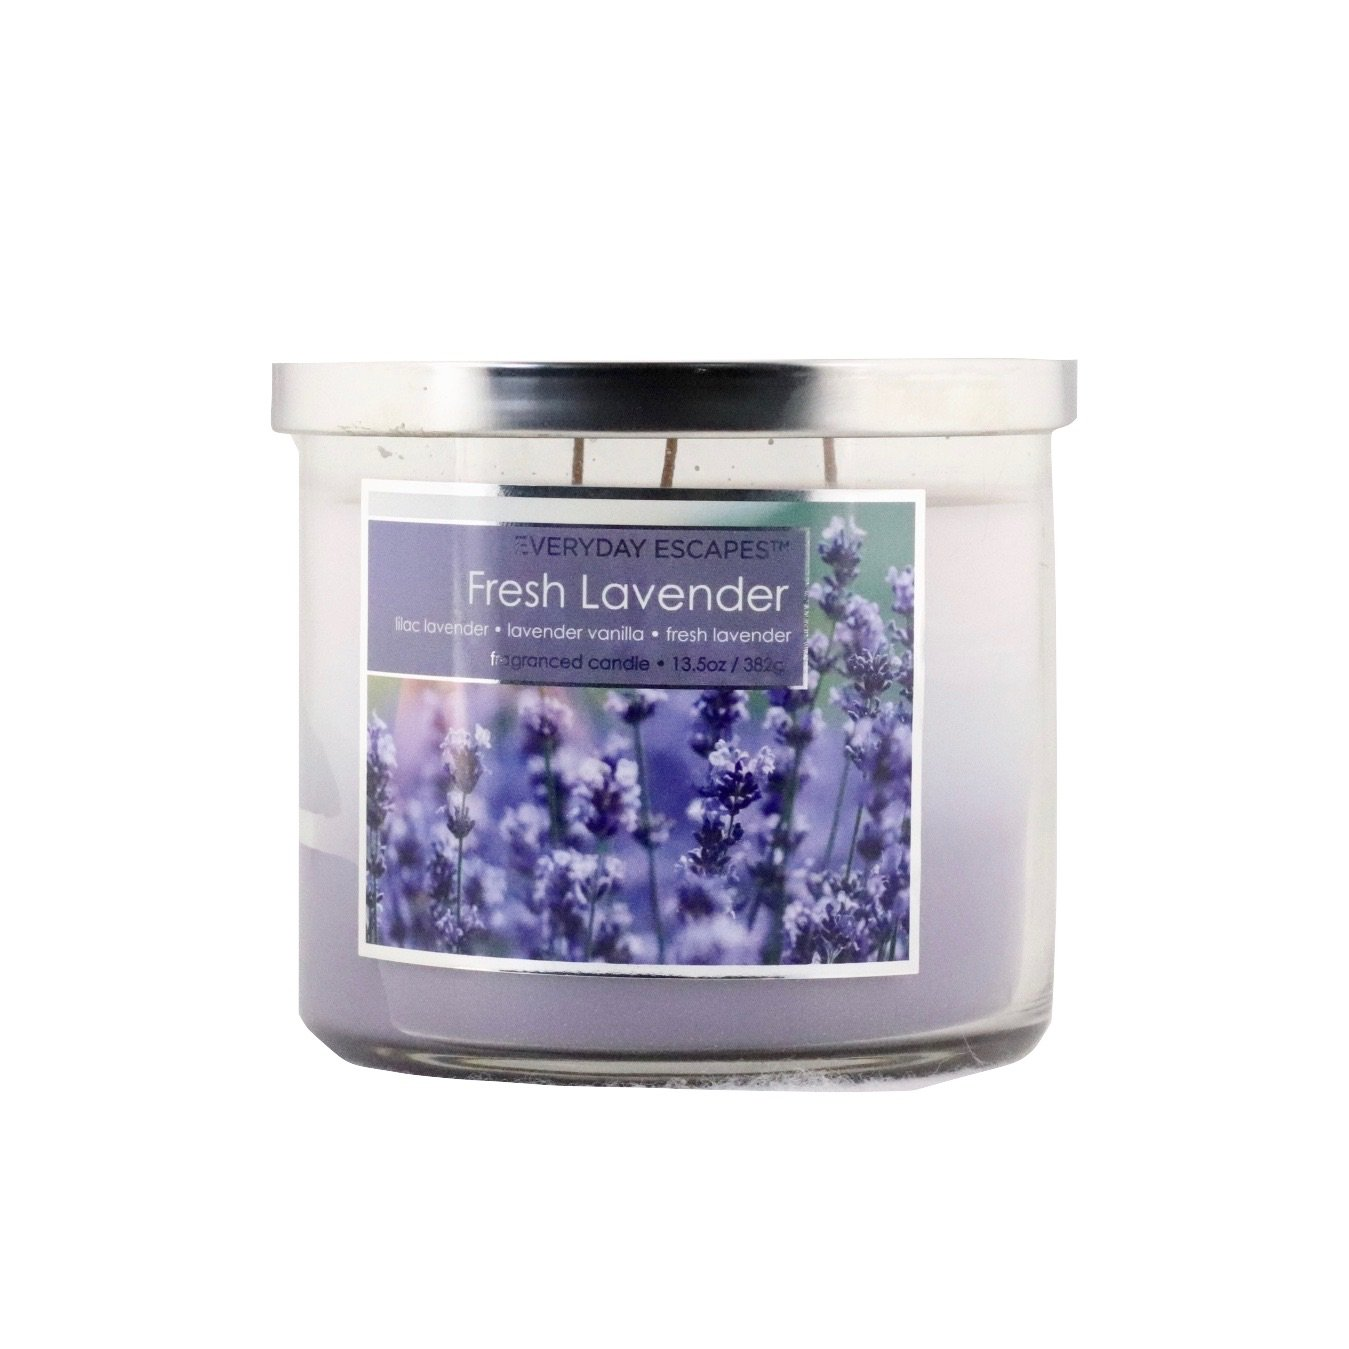 Everyday Escapes by MVP Group Scented Tri-layer Triple Wicks Candle 13.5 oz -Fresh Lavender Lilac Lavender/Lavender Vanilla/Fresh Lavender by Everyday